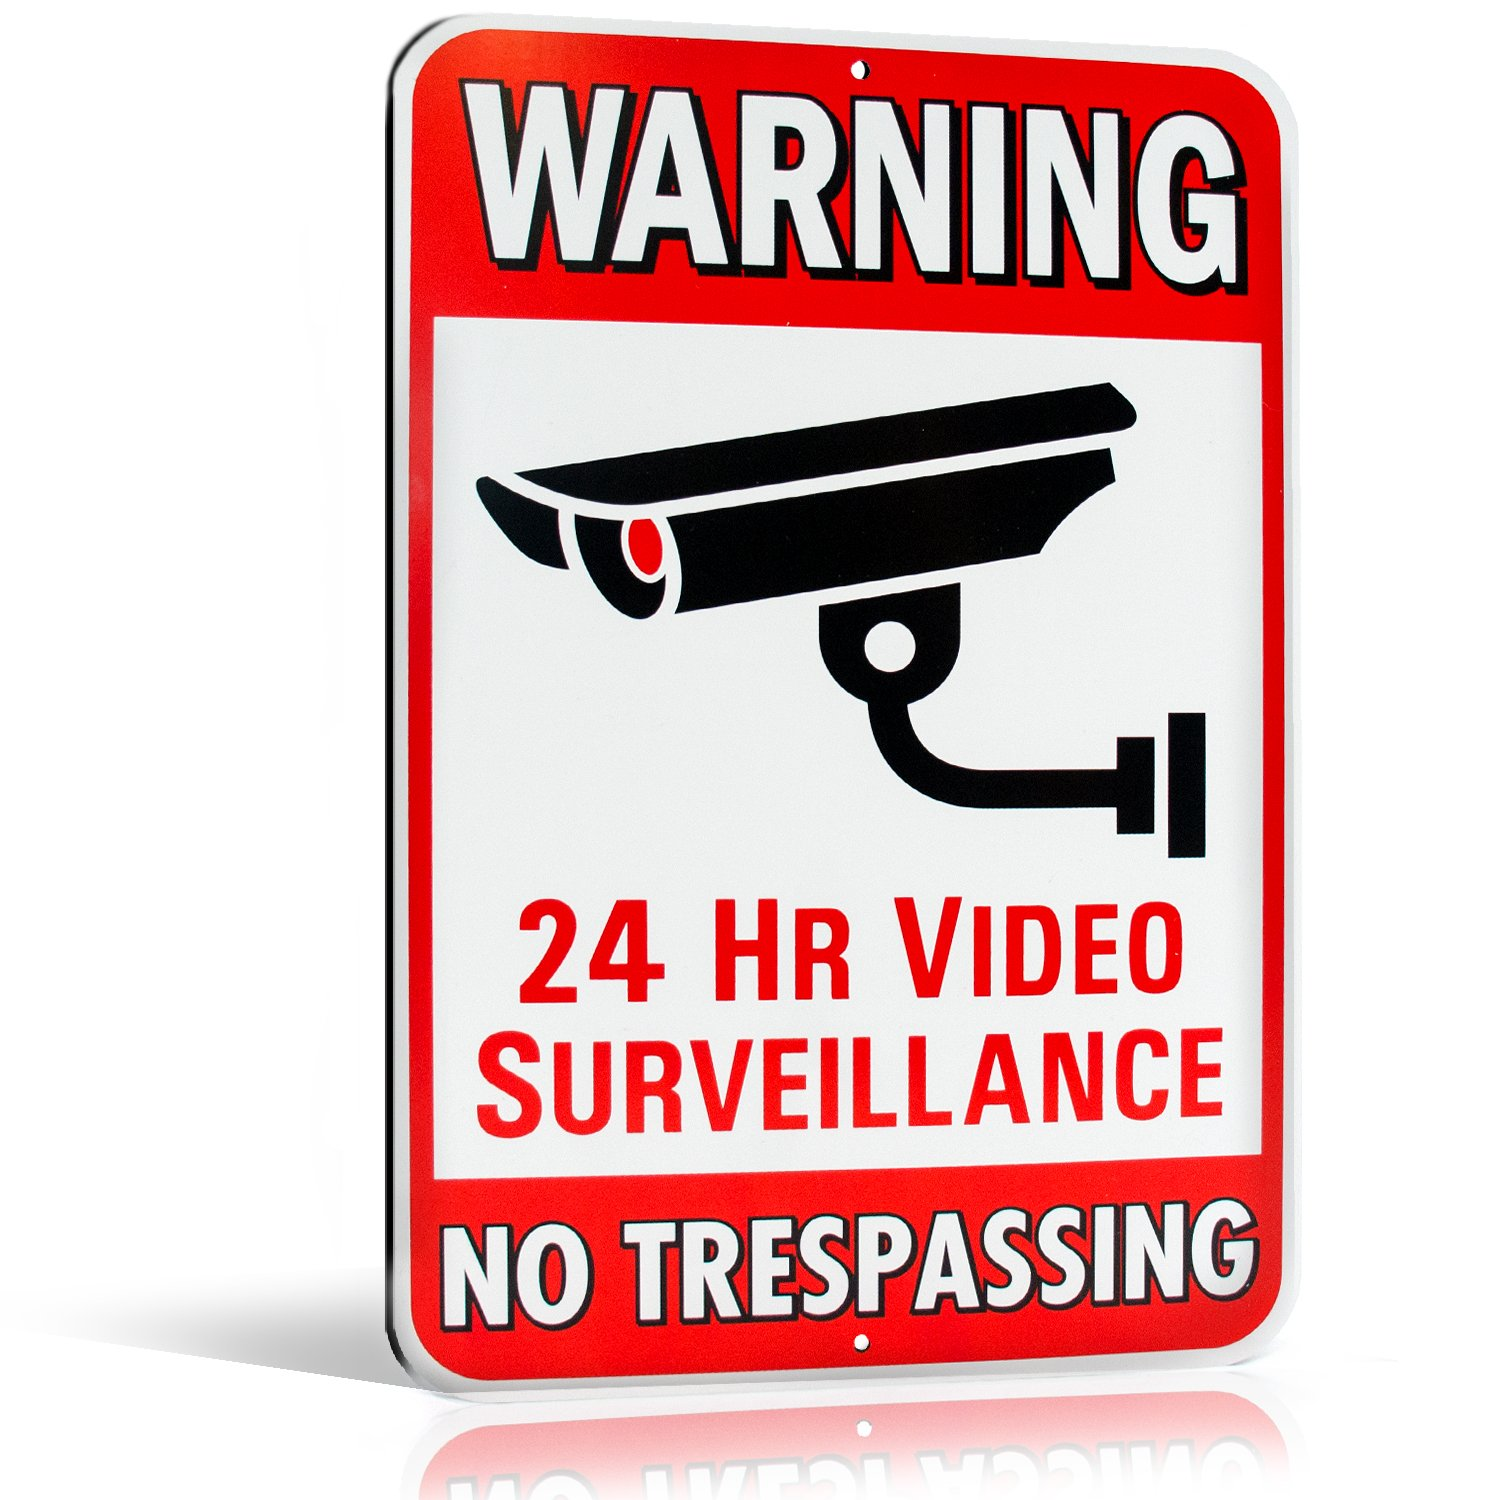 Warning 24 Hour Video Surveillance No Trespassing Metal Sign - Heavy Duty Aluminum - Security Camera Warning, 1/8 Thick Di-Bond Metal, 10'' By 15'' (Aluminum)